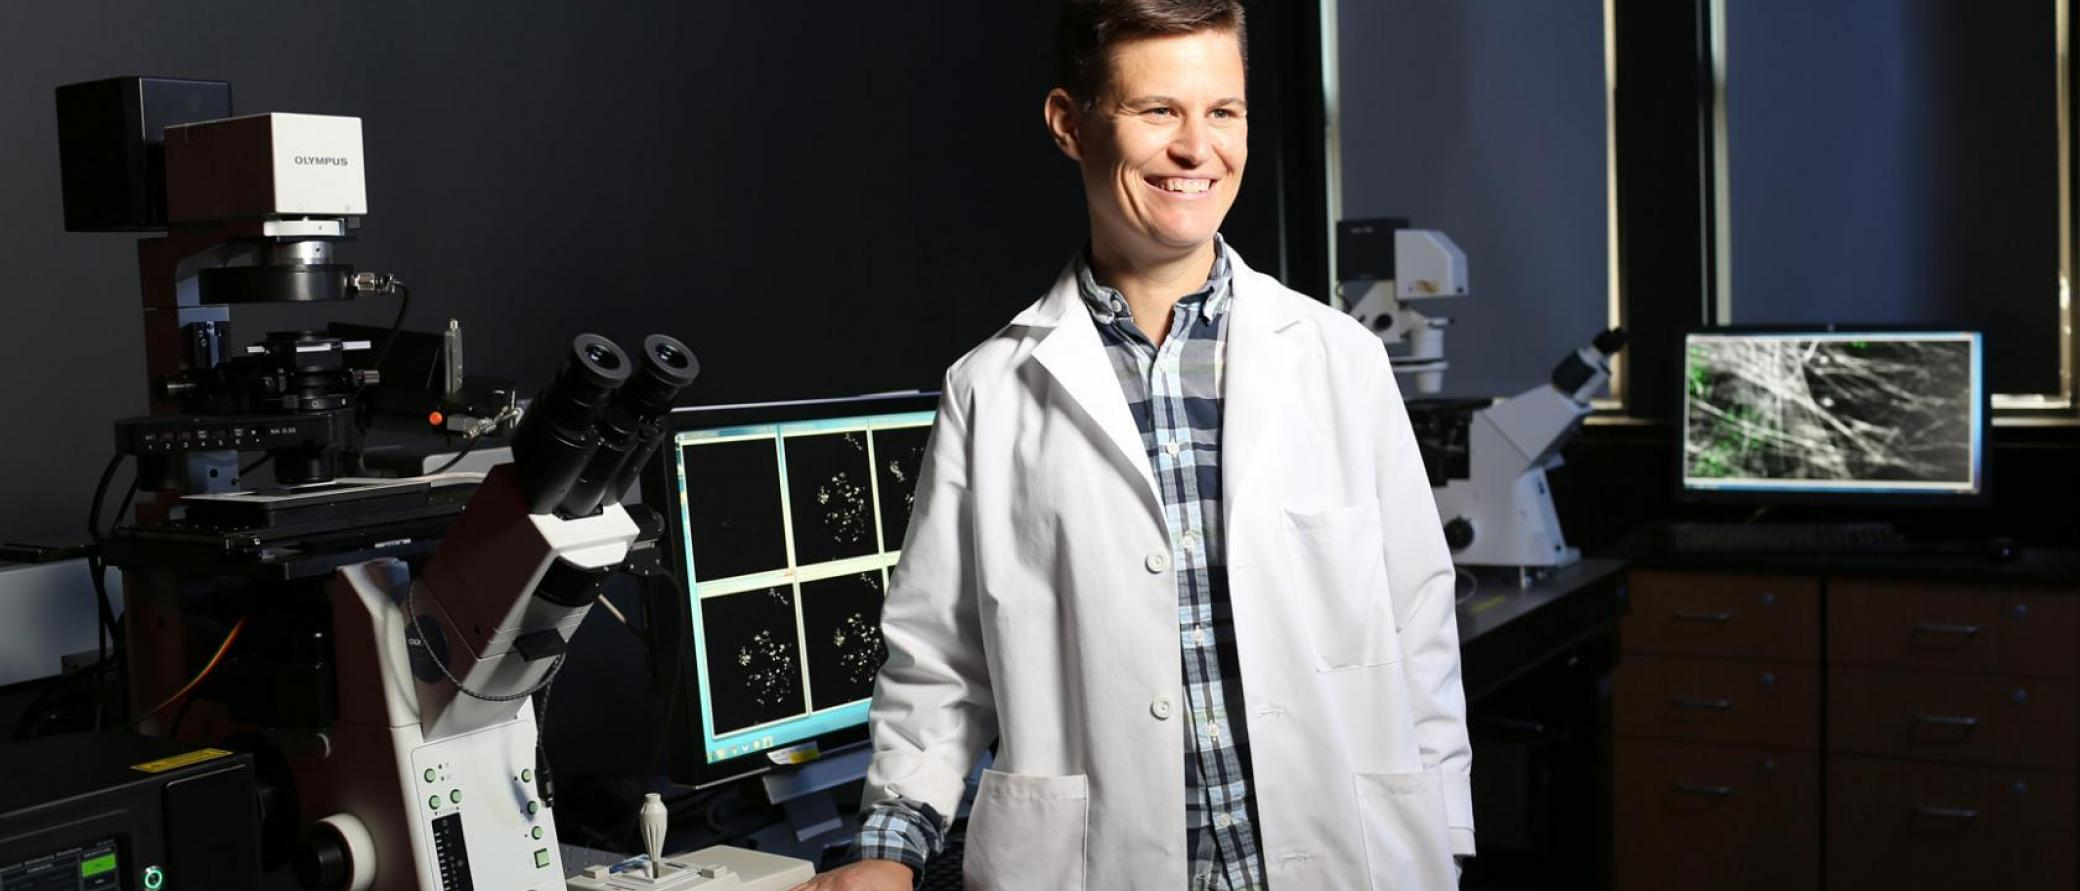 Female research scientist stands next to microscope.